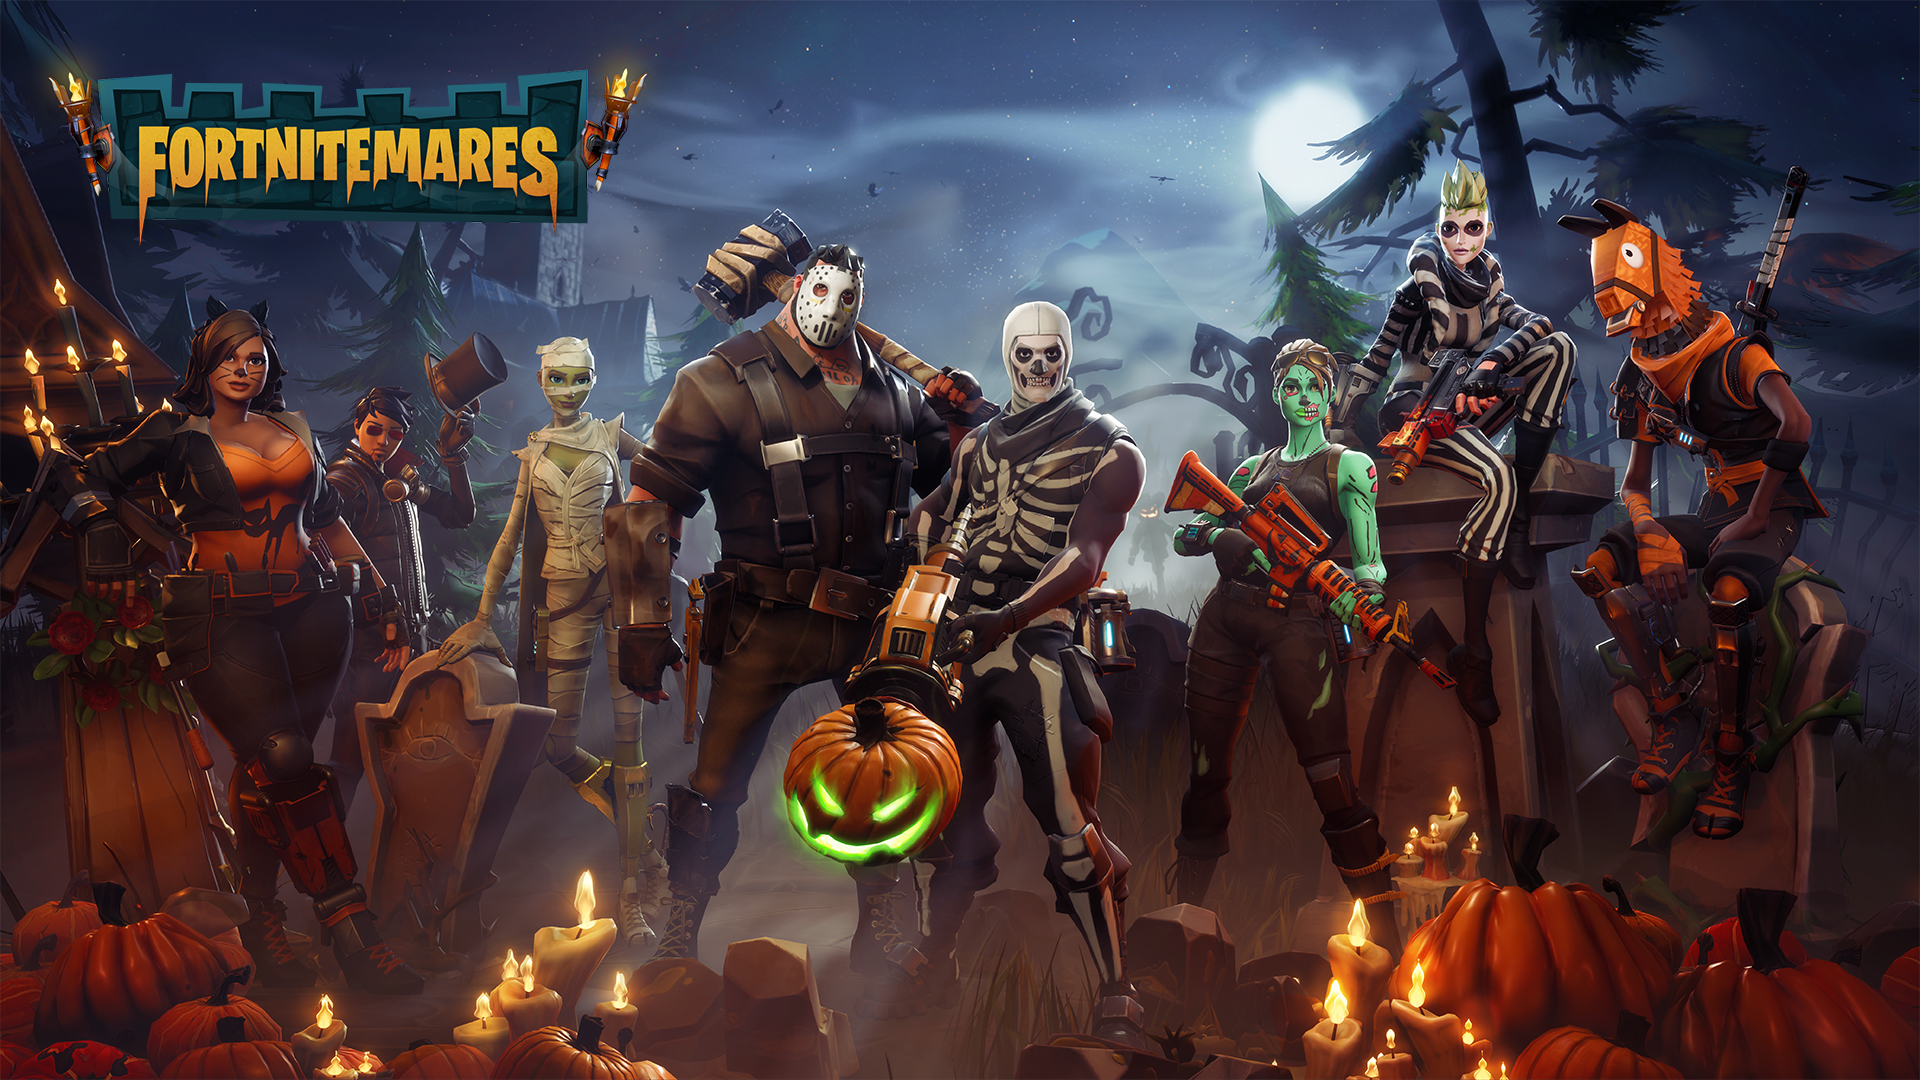 The Fortnite  Battle Royale Fortnitemares Halloween Event Is Sticki     The Fortnite  Battle Royale Fortnitemares Halloween Event Is Sticking  Around For A While Longer Yet